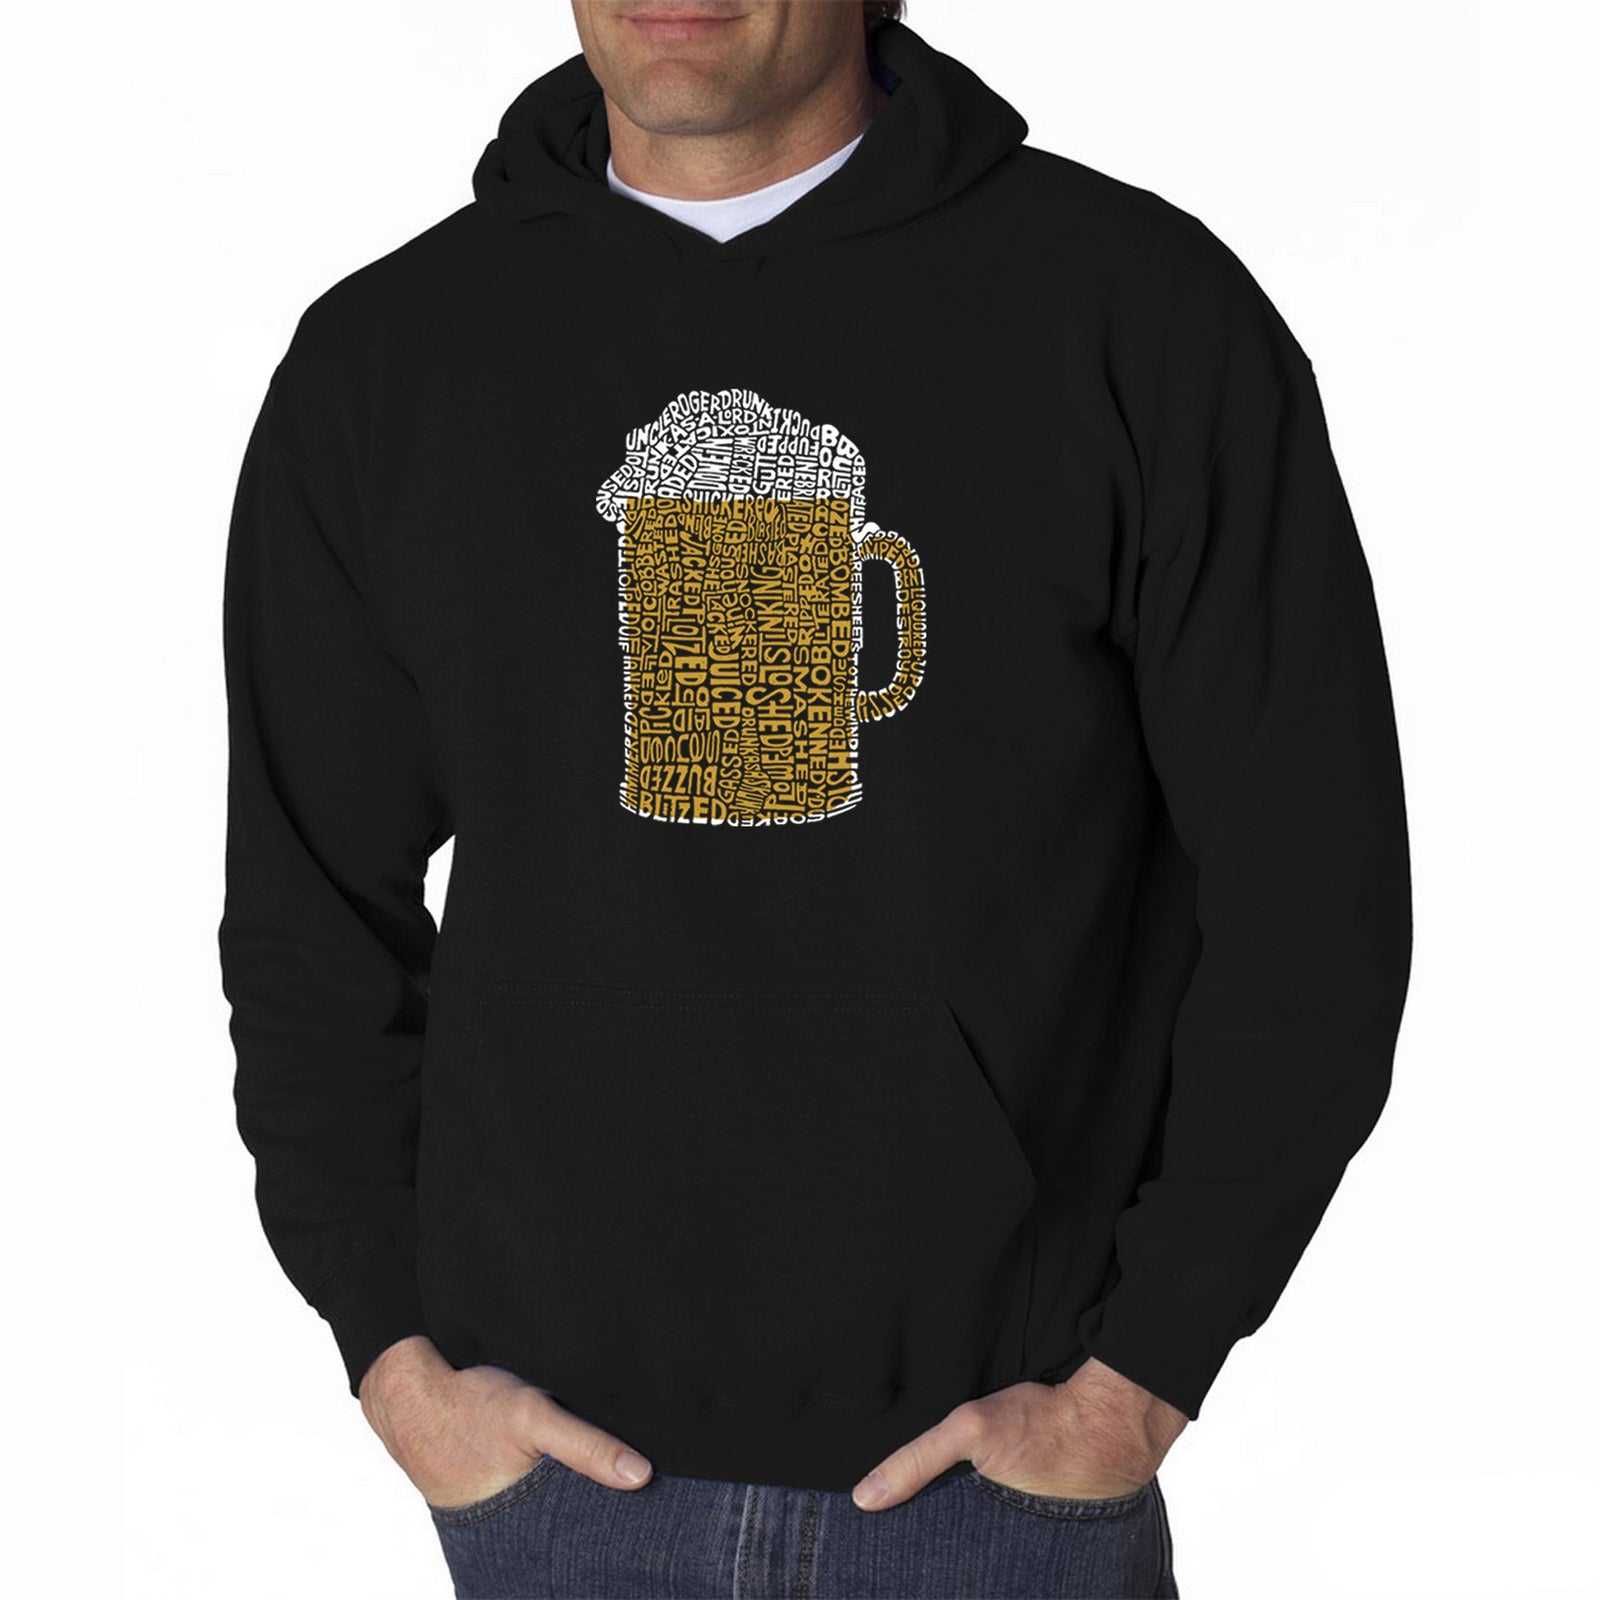 Men's Hooded Sweatshirt - Slang Terms for Being Wasted